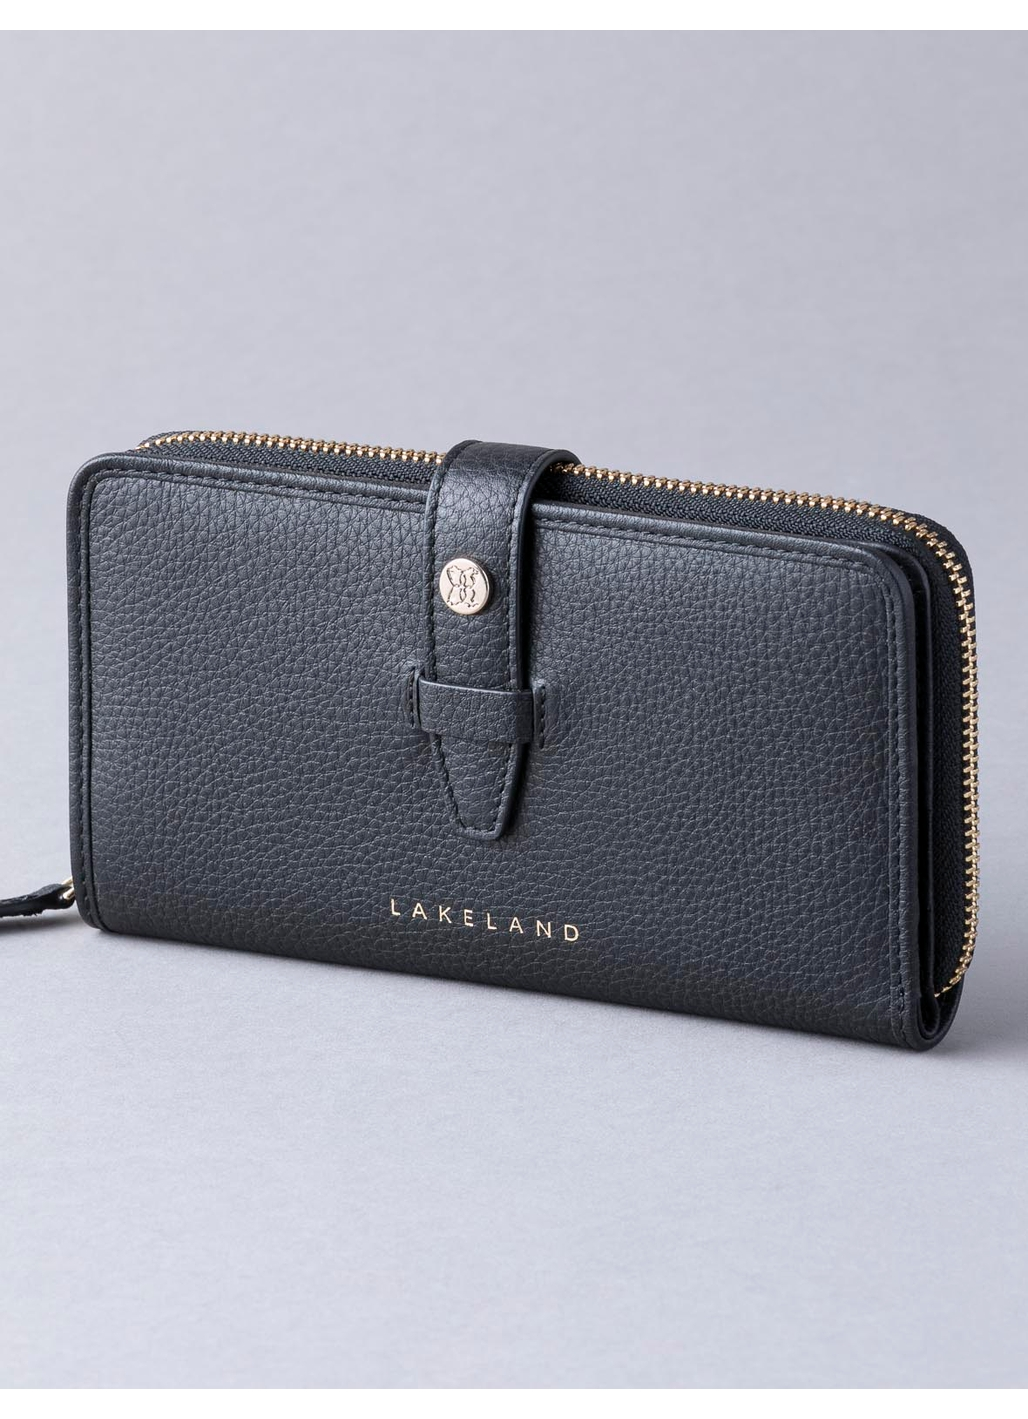 Fairfield Leather Purse in Black